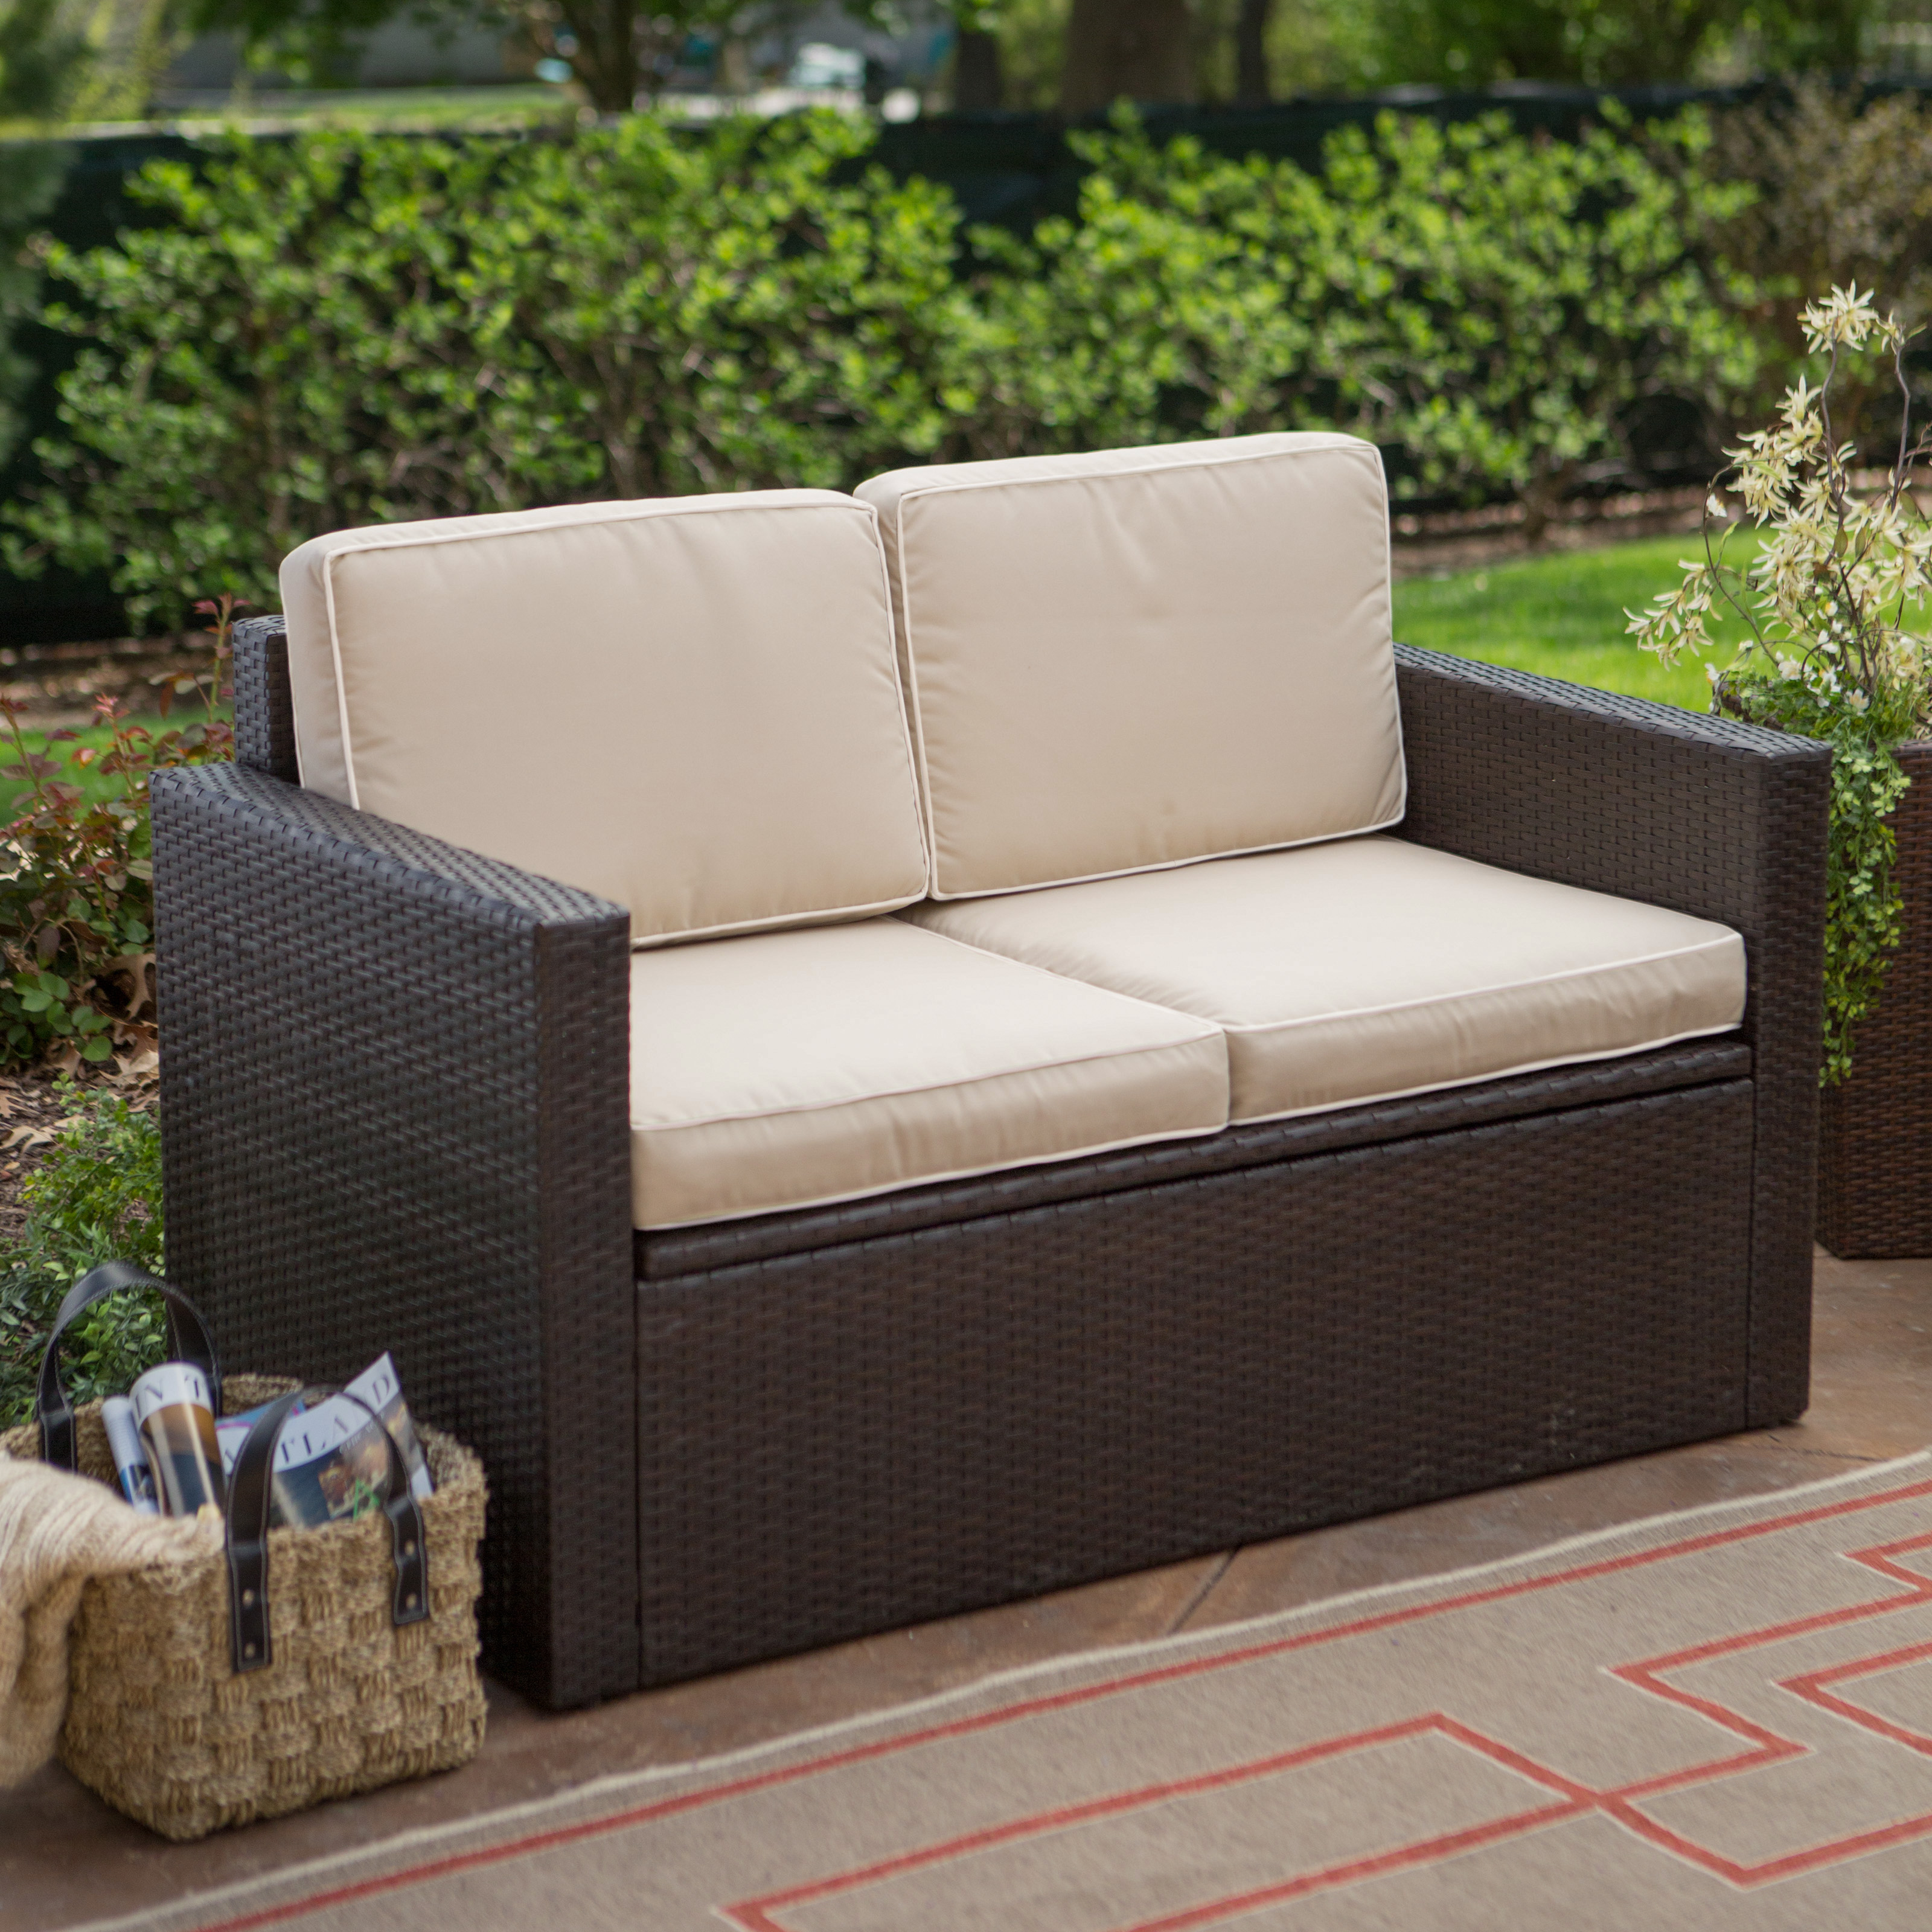 Lovely Patio Furniture with Storage